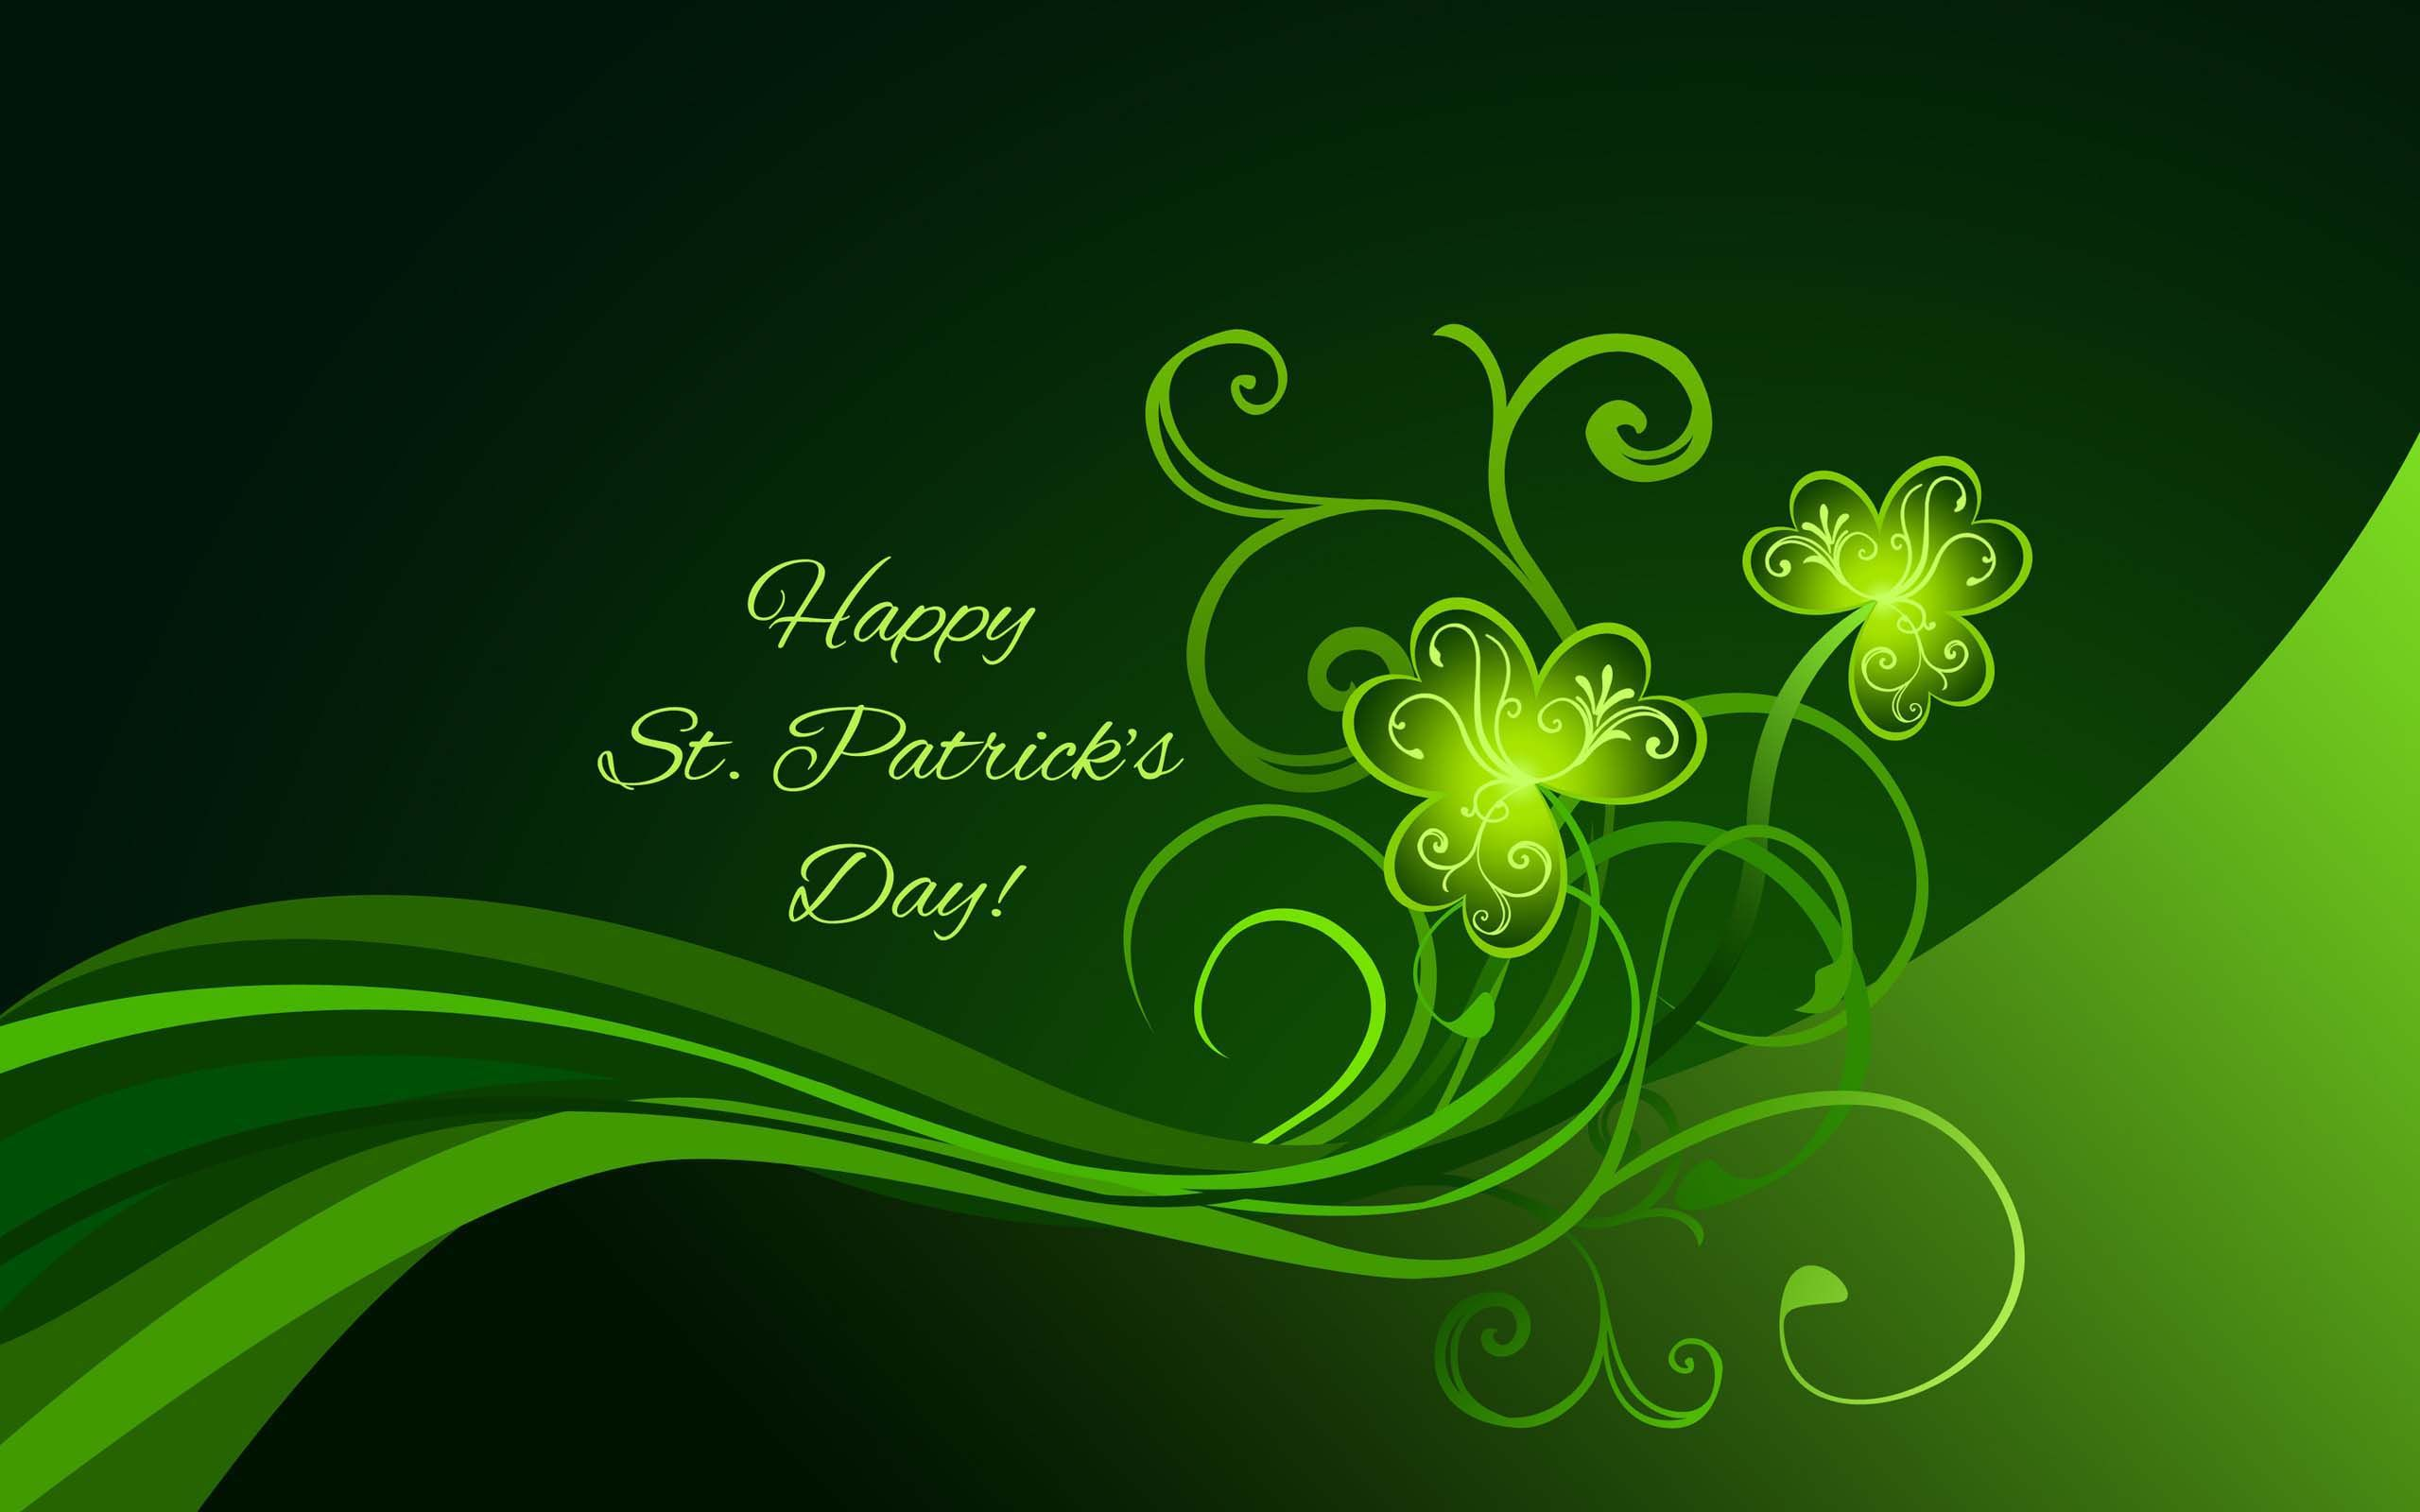 St. Patrick's Day Wallpaper | st patricks day wallpaper hd ...